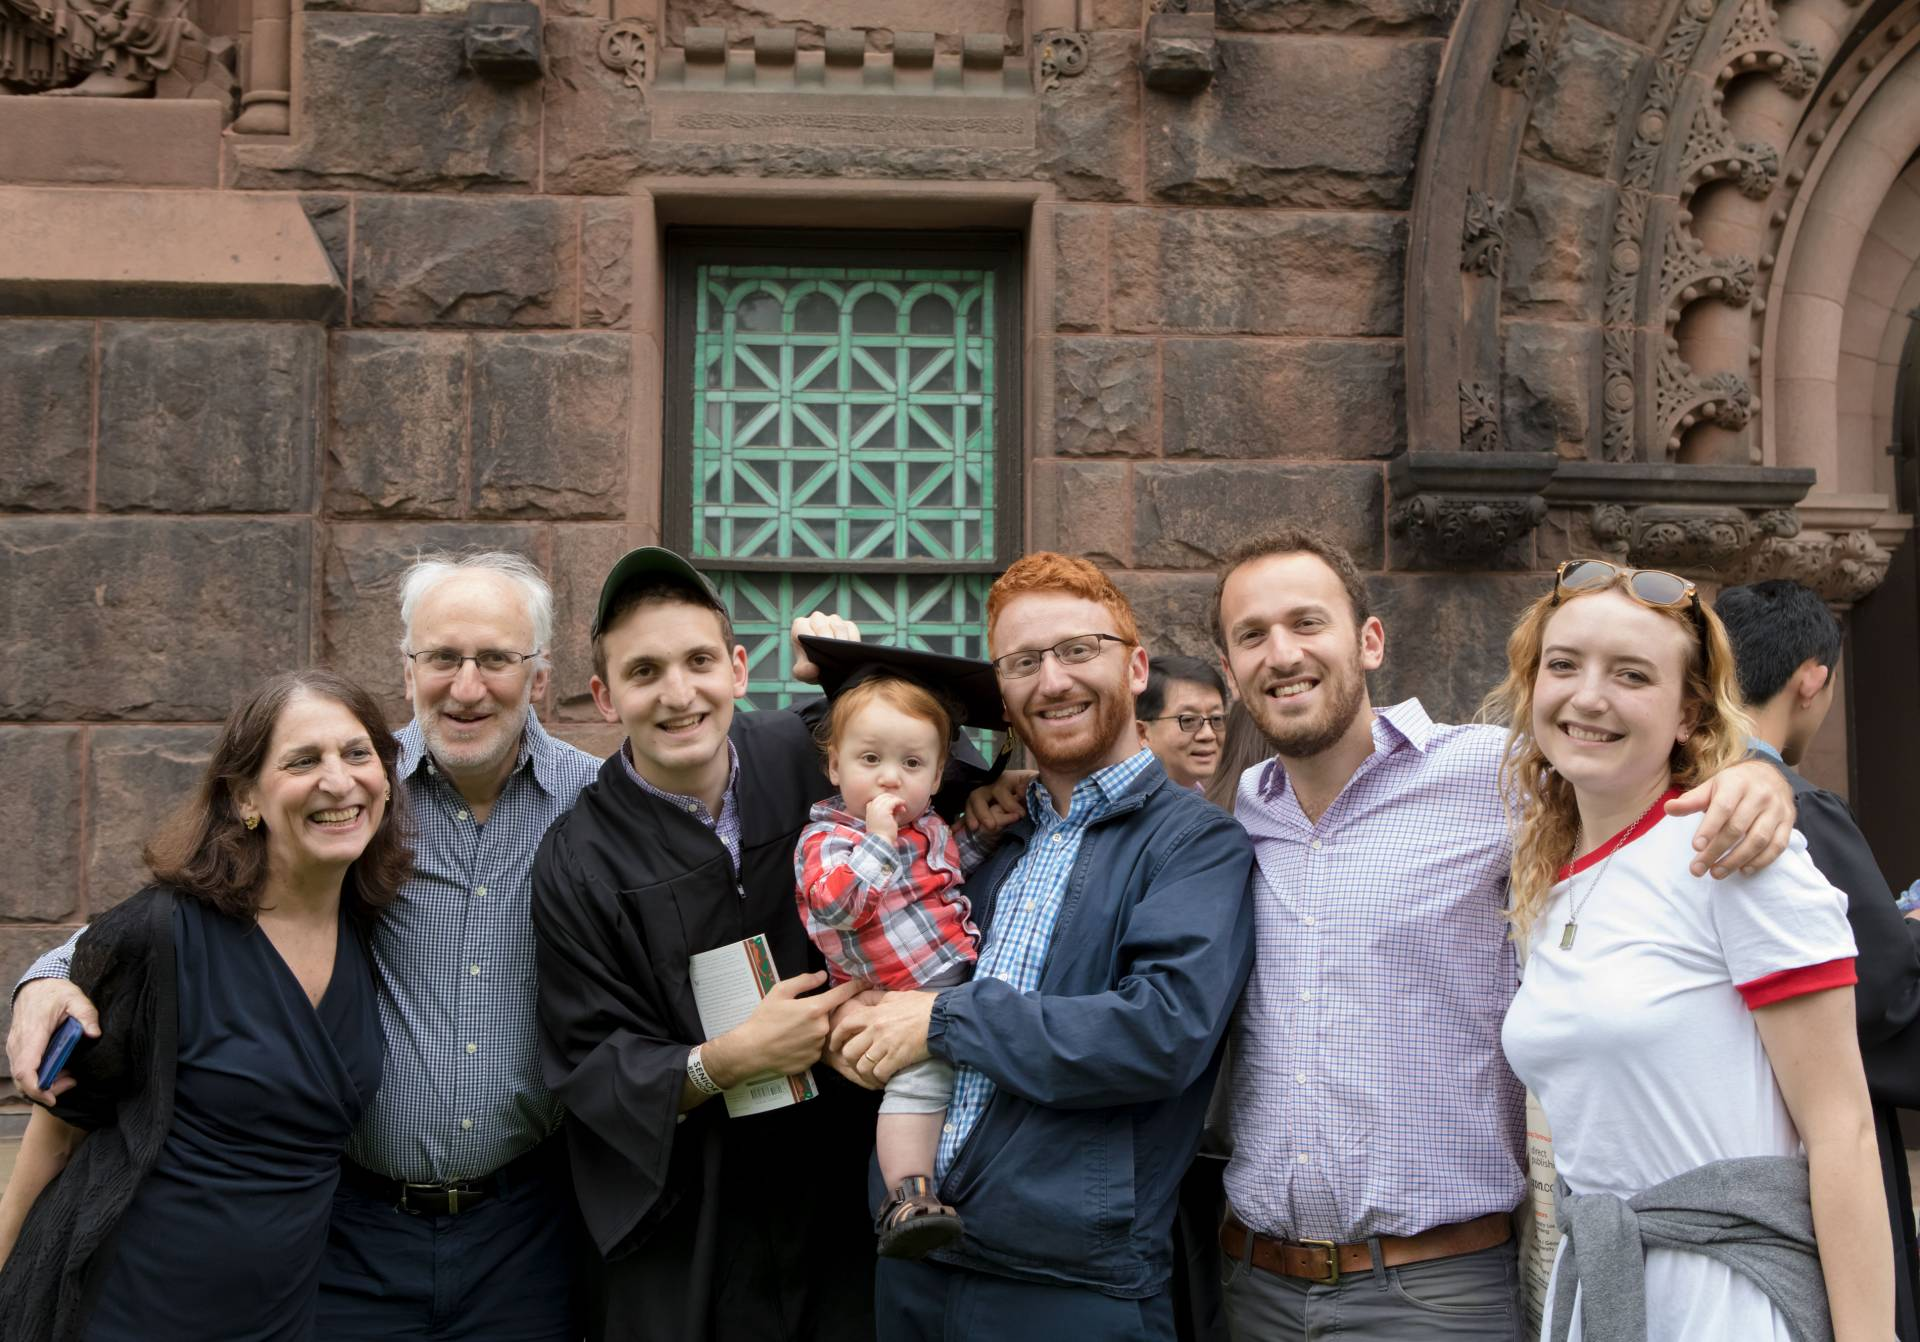 Gabriel Fisher standing with family after the Baccalaureate 2017 ceremony